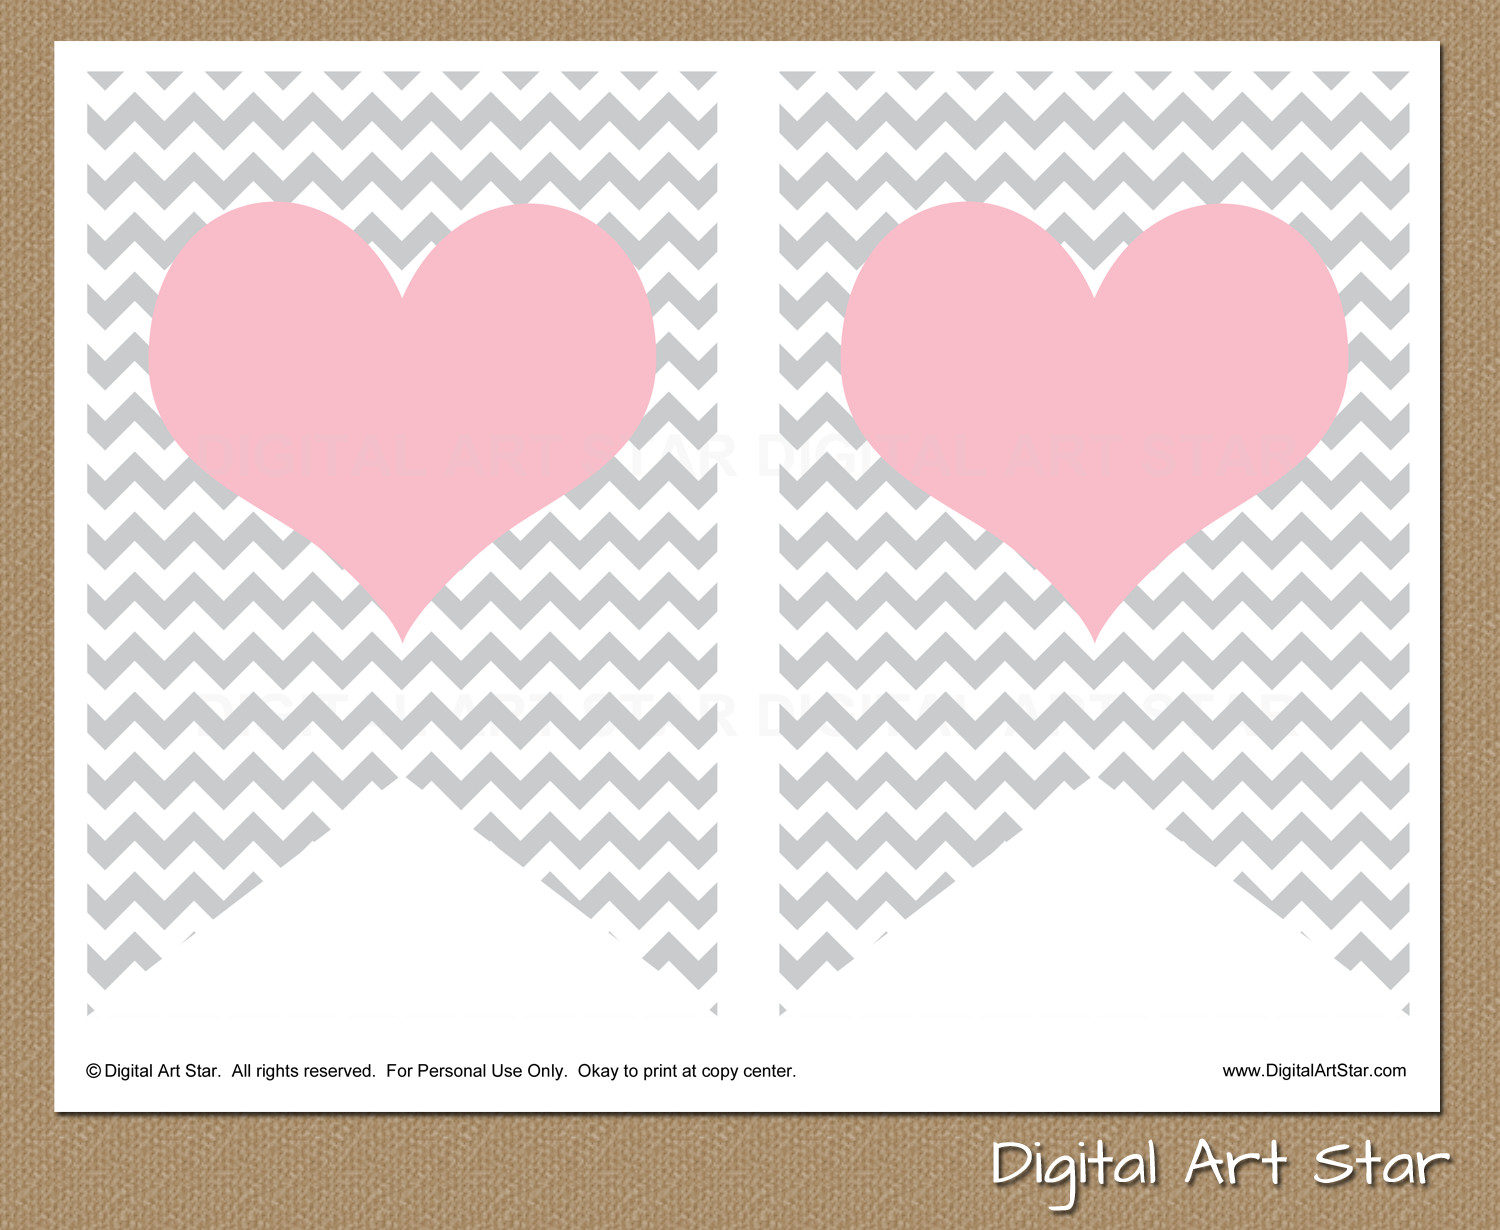 Baby Shower Banner Printable Digital Art Star Printable Party Decor Diy Printable It